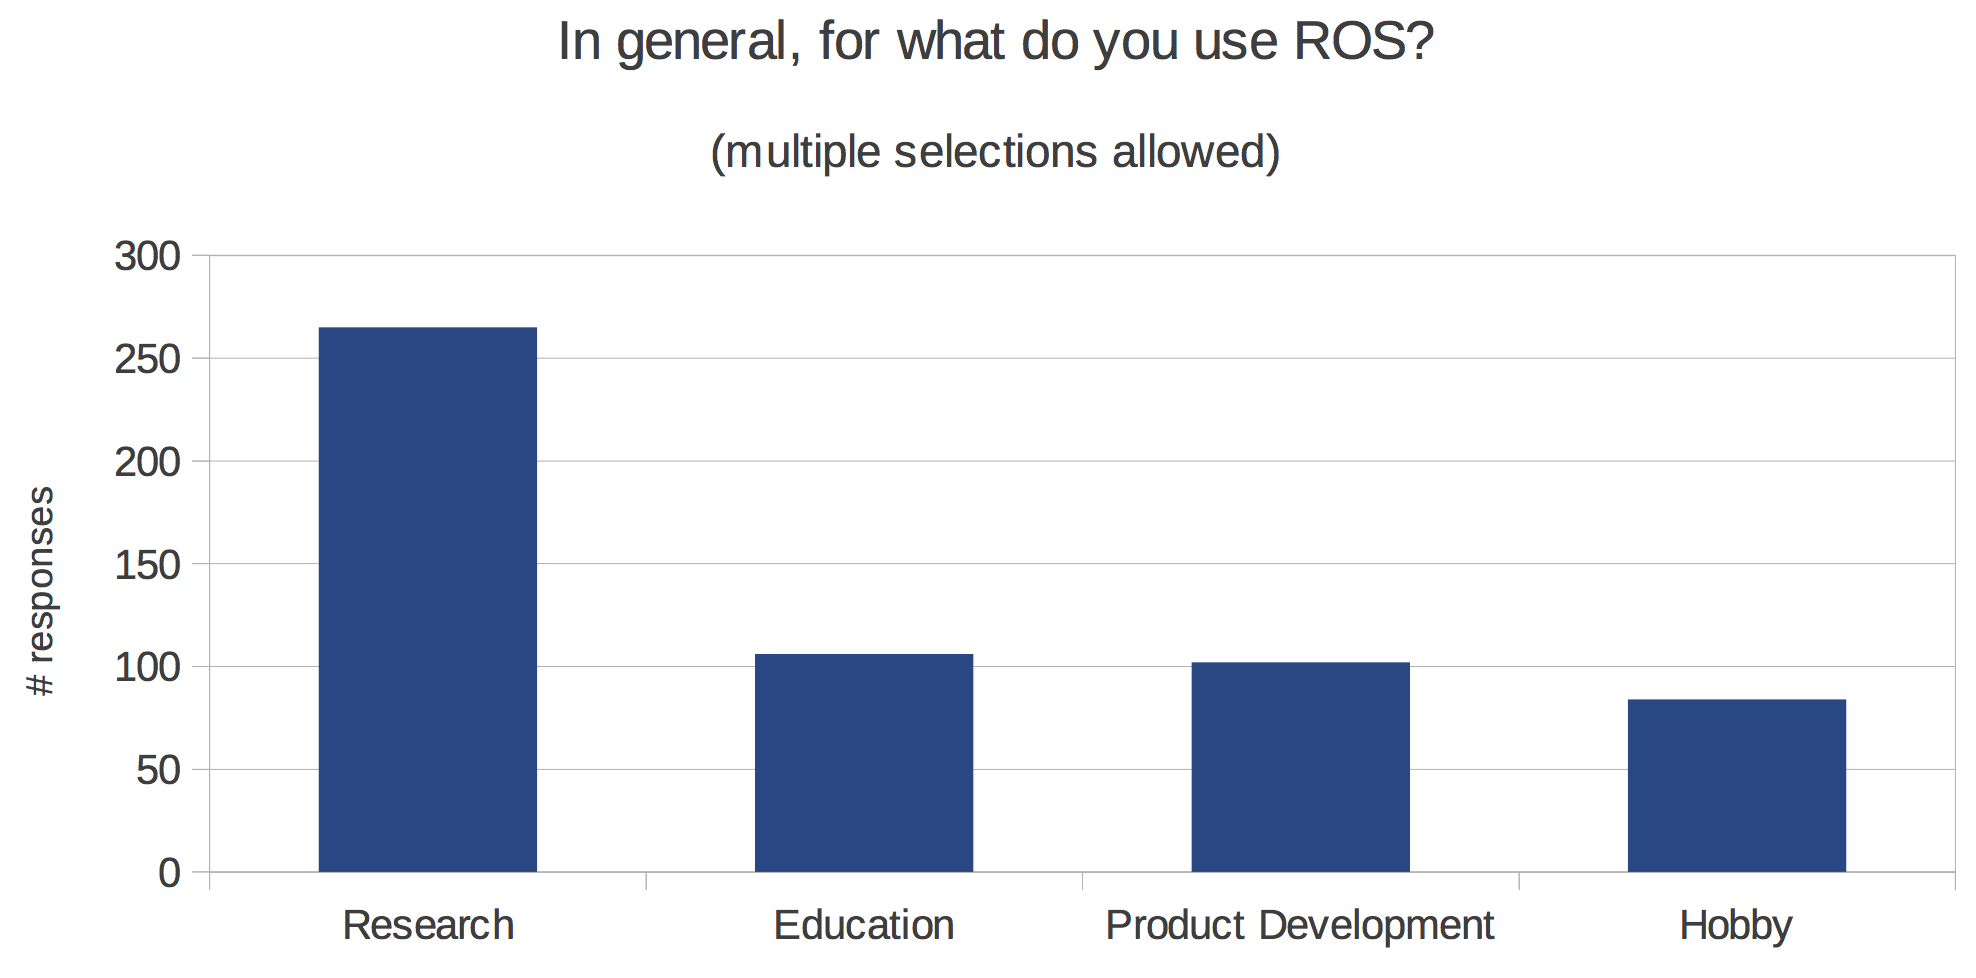 http://www.ros.org/news/2014/04/01/for-what-do-you-use-ros.png